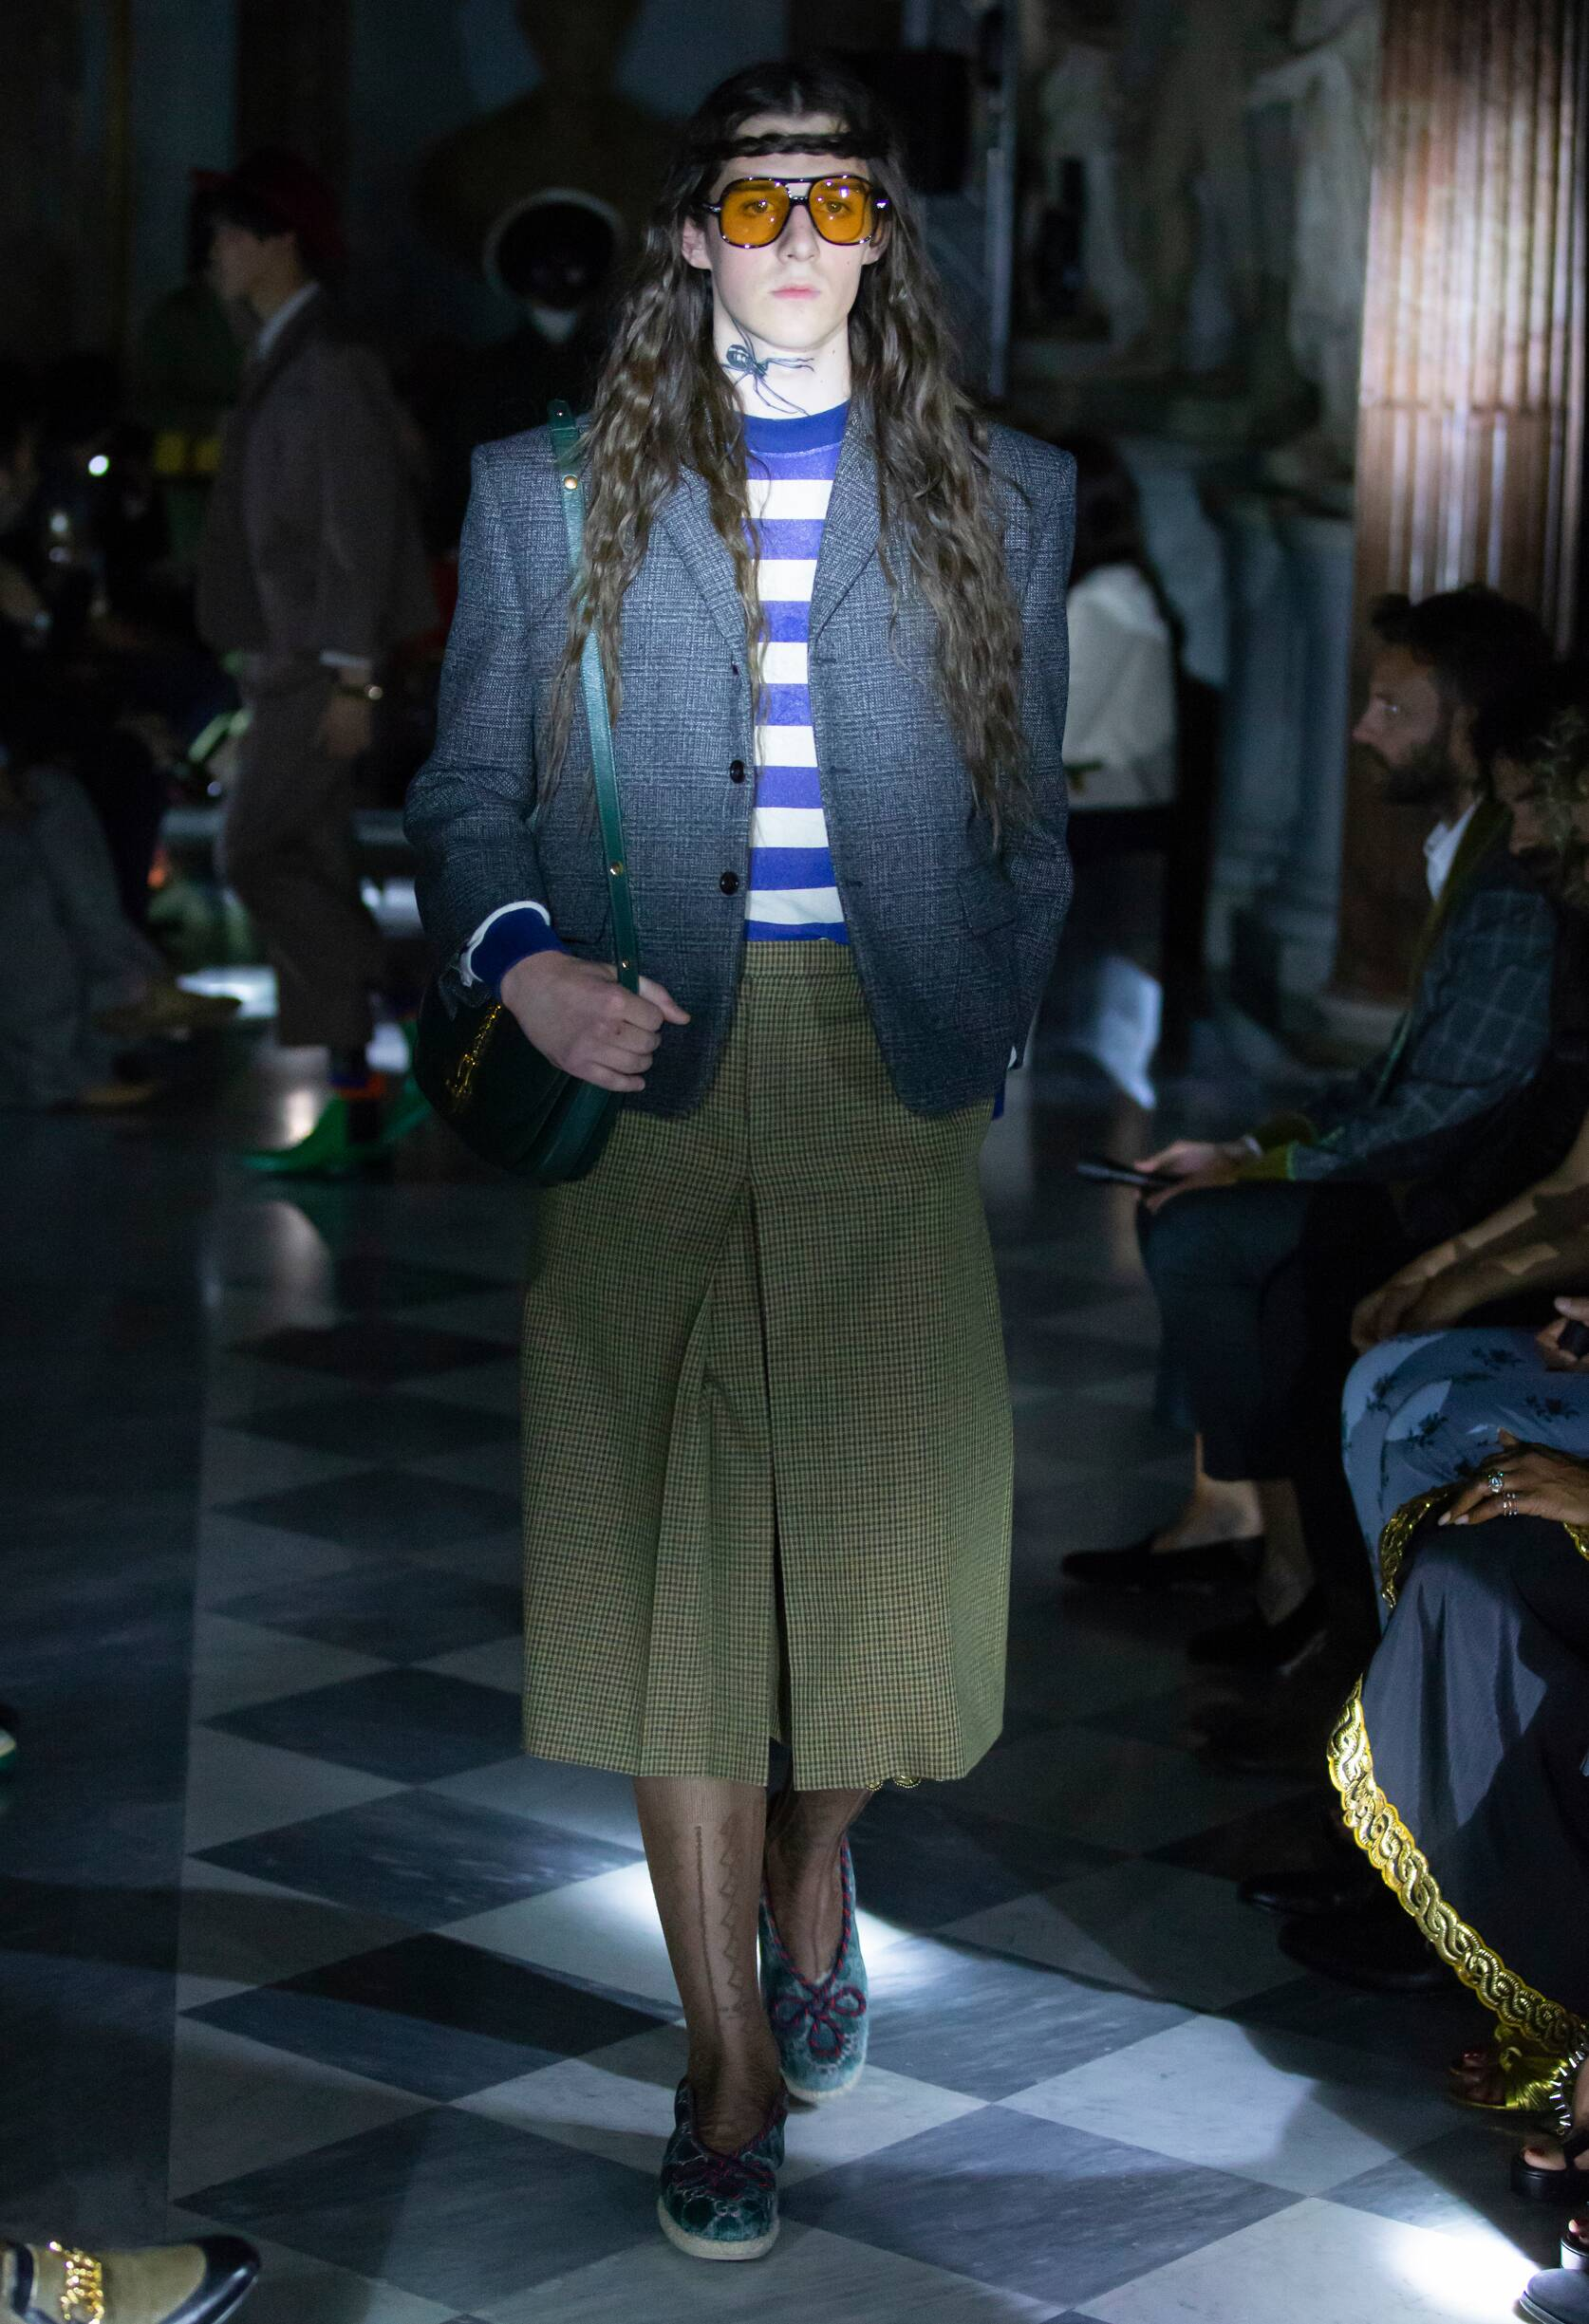 Gucci Cruise 2020 Collection Look 42 Rome